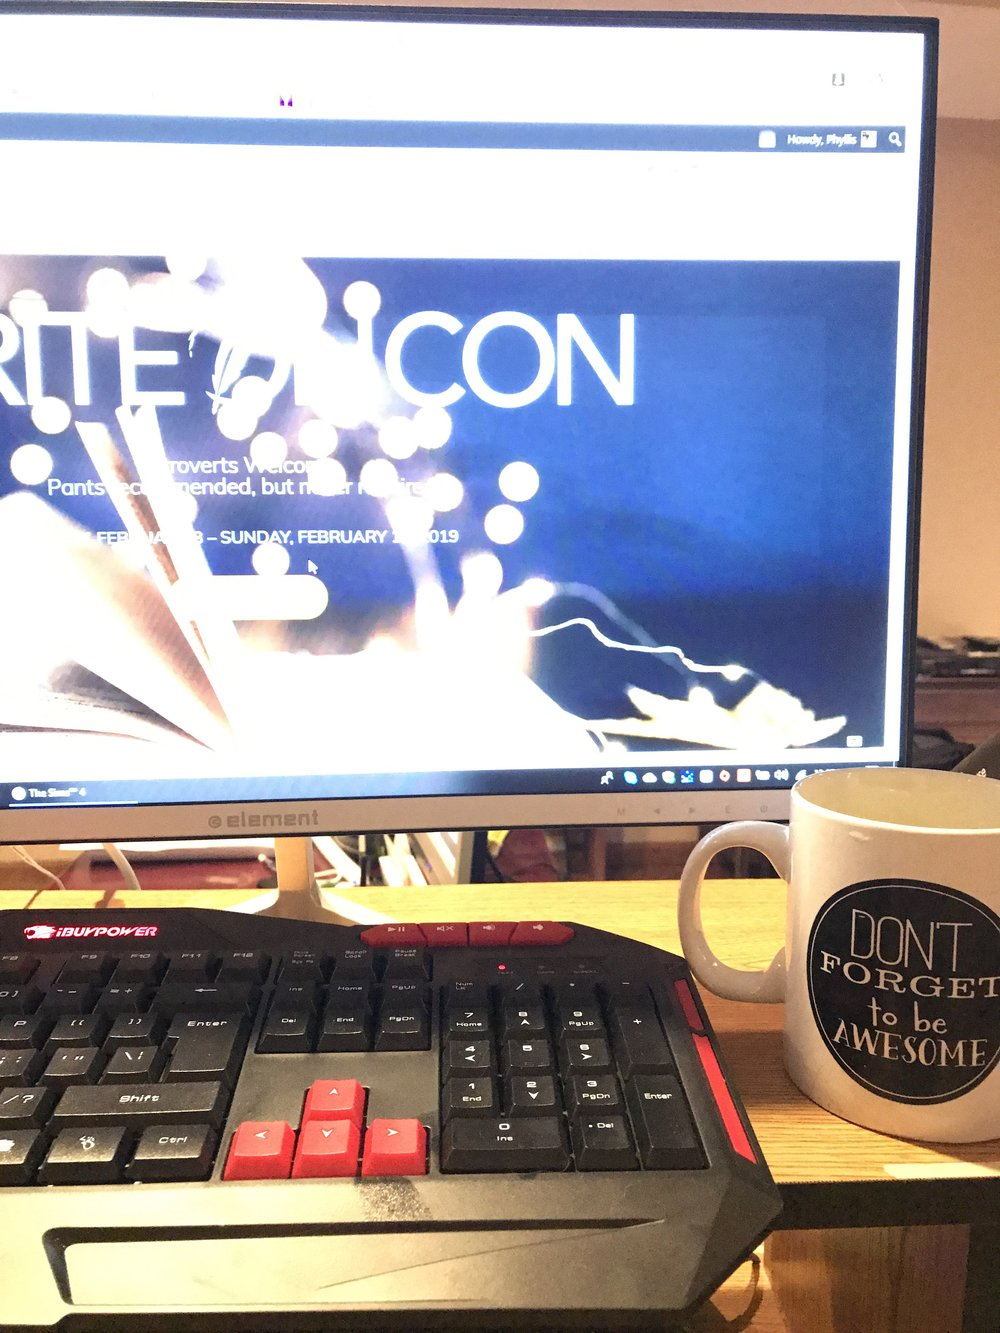 Coffee and a Con - It was fun to attend WriteOnCon in my pajamas